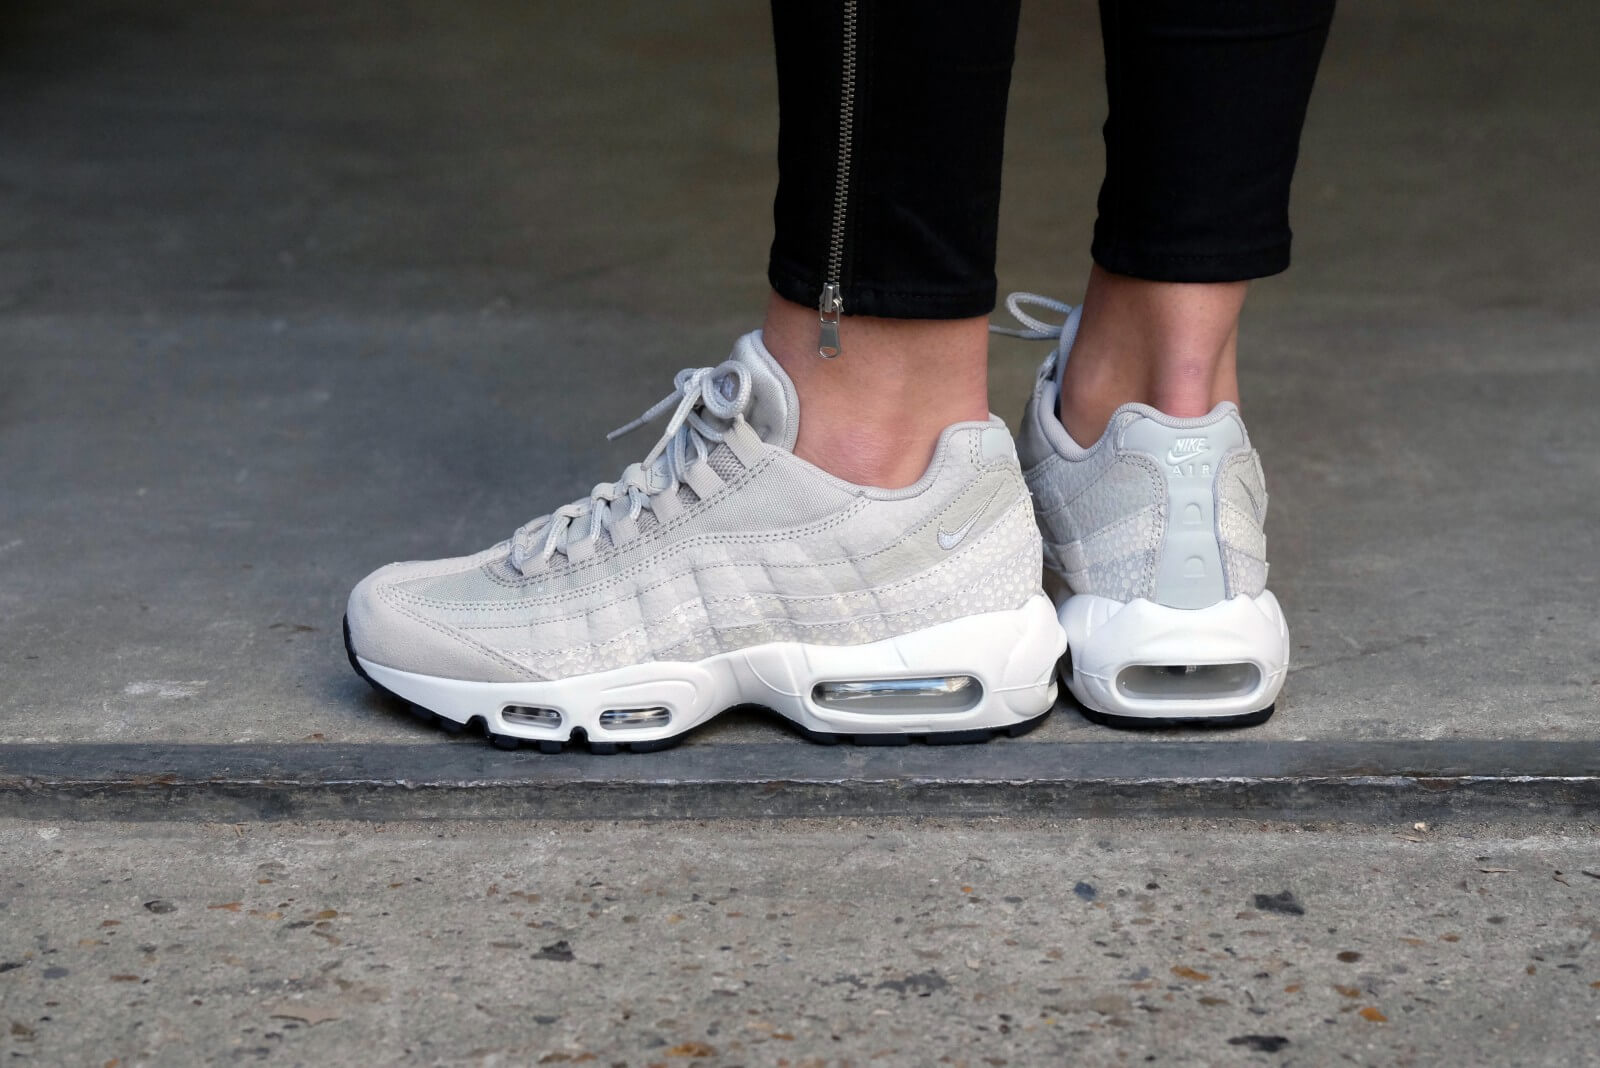 Nike Air Max 95 Premium (Light Bone & Barley Green) End